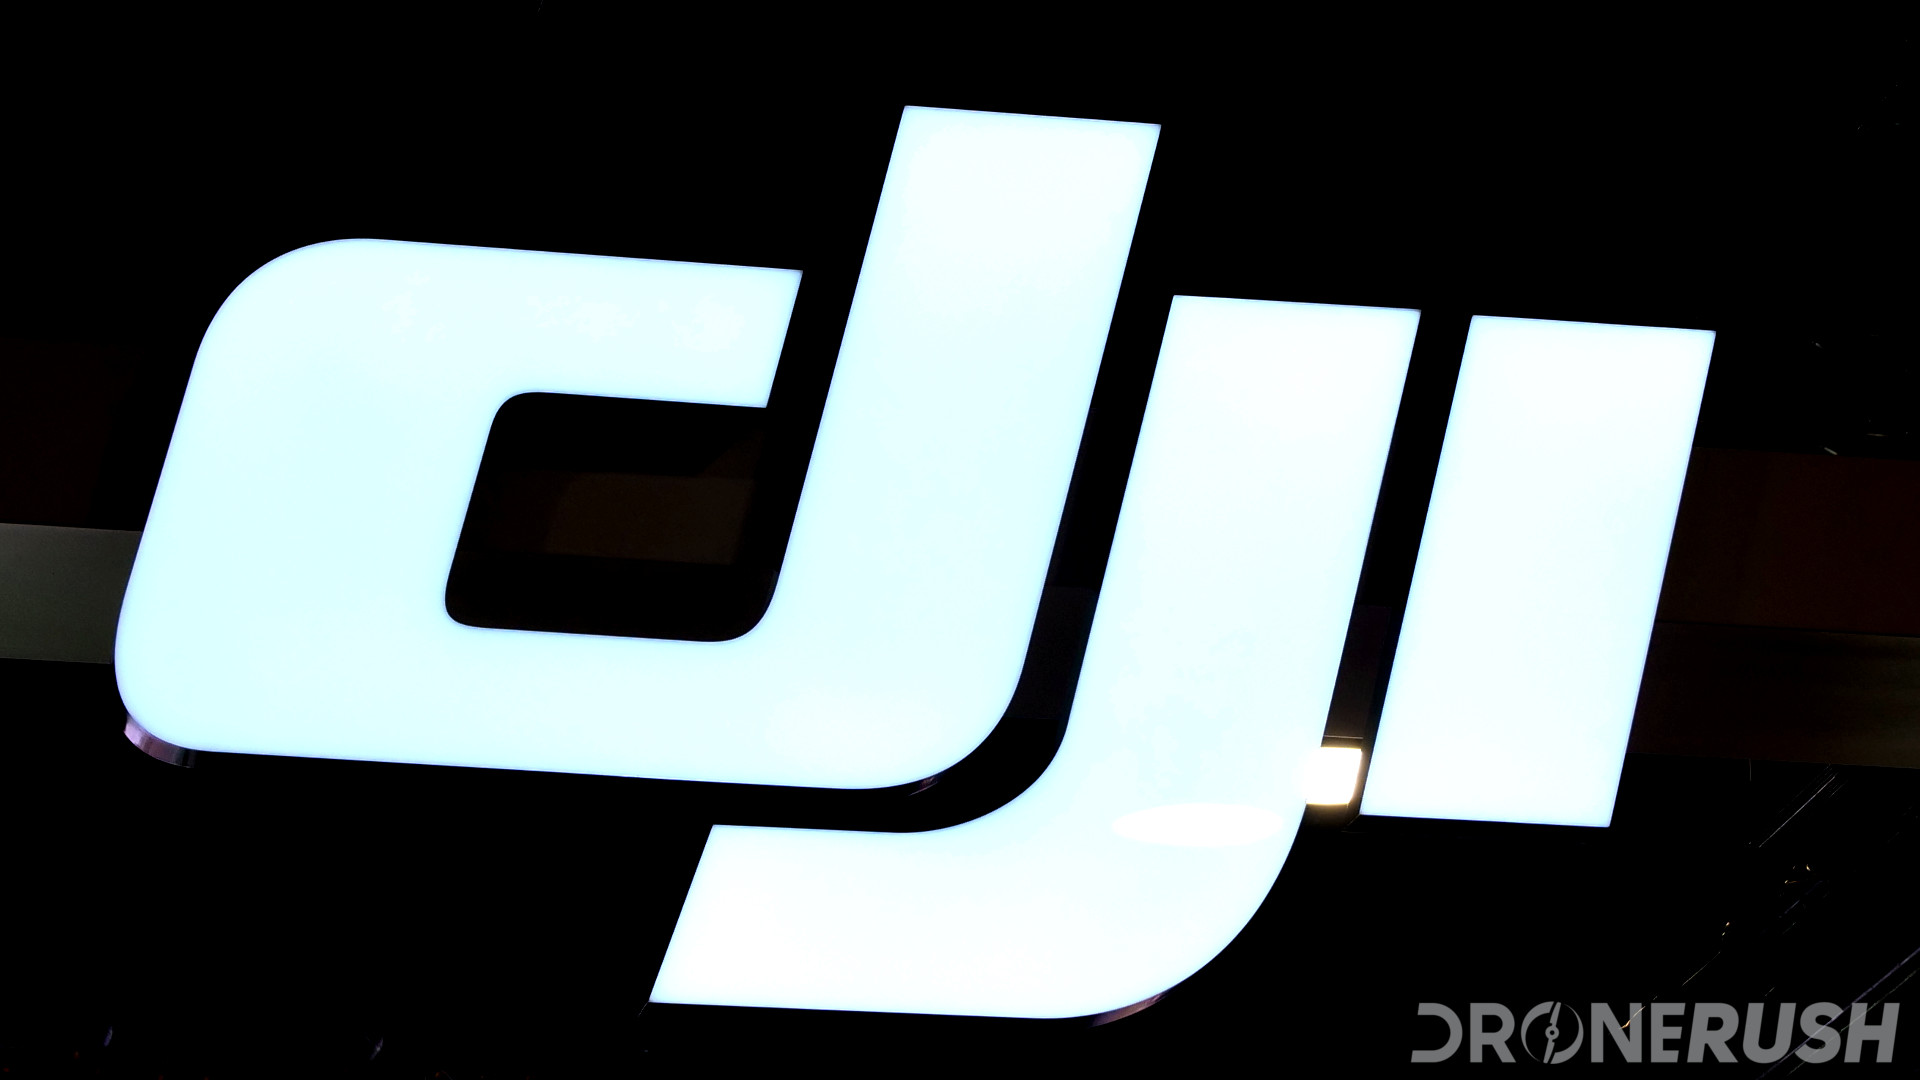 CES 2018 dr DJI booth logo